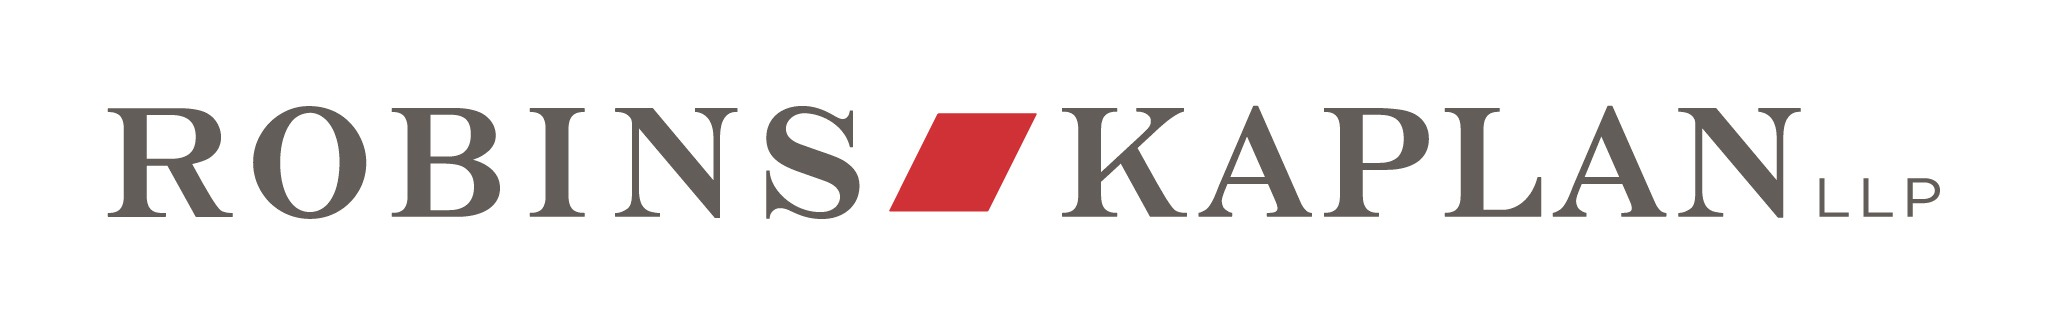 "black serif text reading ""robins kaplan LLP"" with a red polygon between the first two words logo"